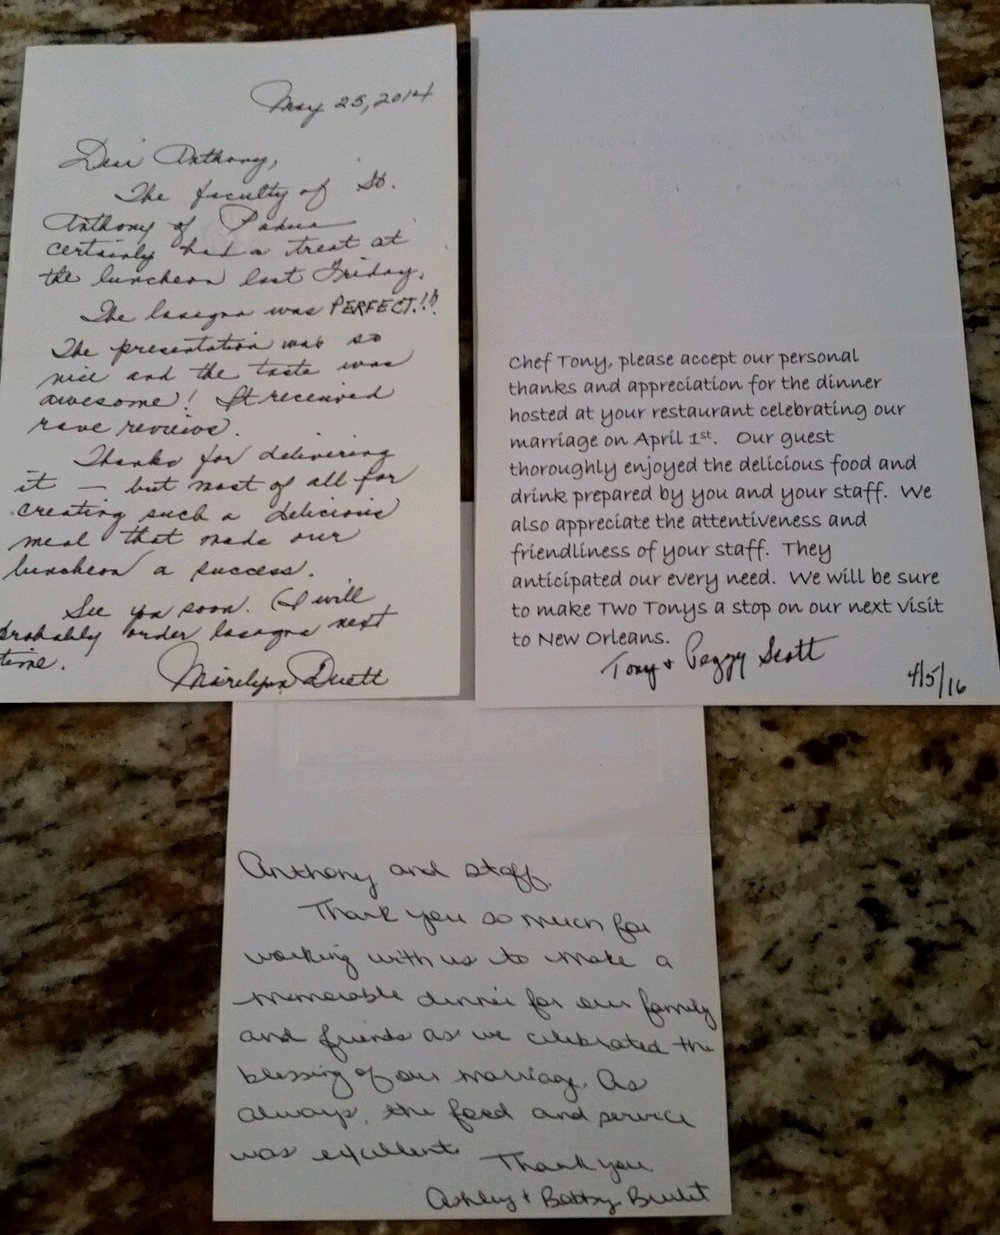 Above are some recent letters of gratitude from our cherished customers. Read the transcribed letters below.